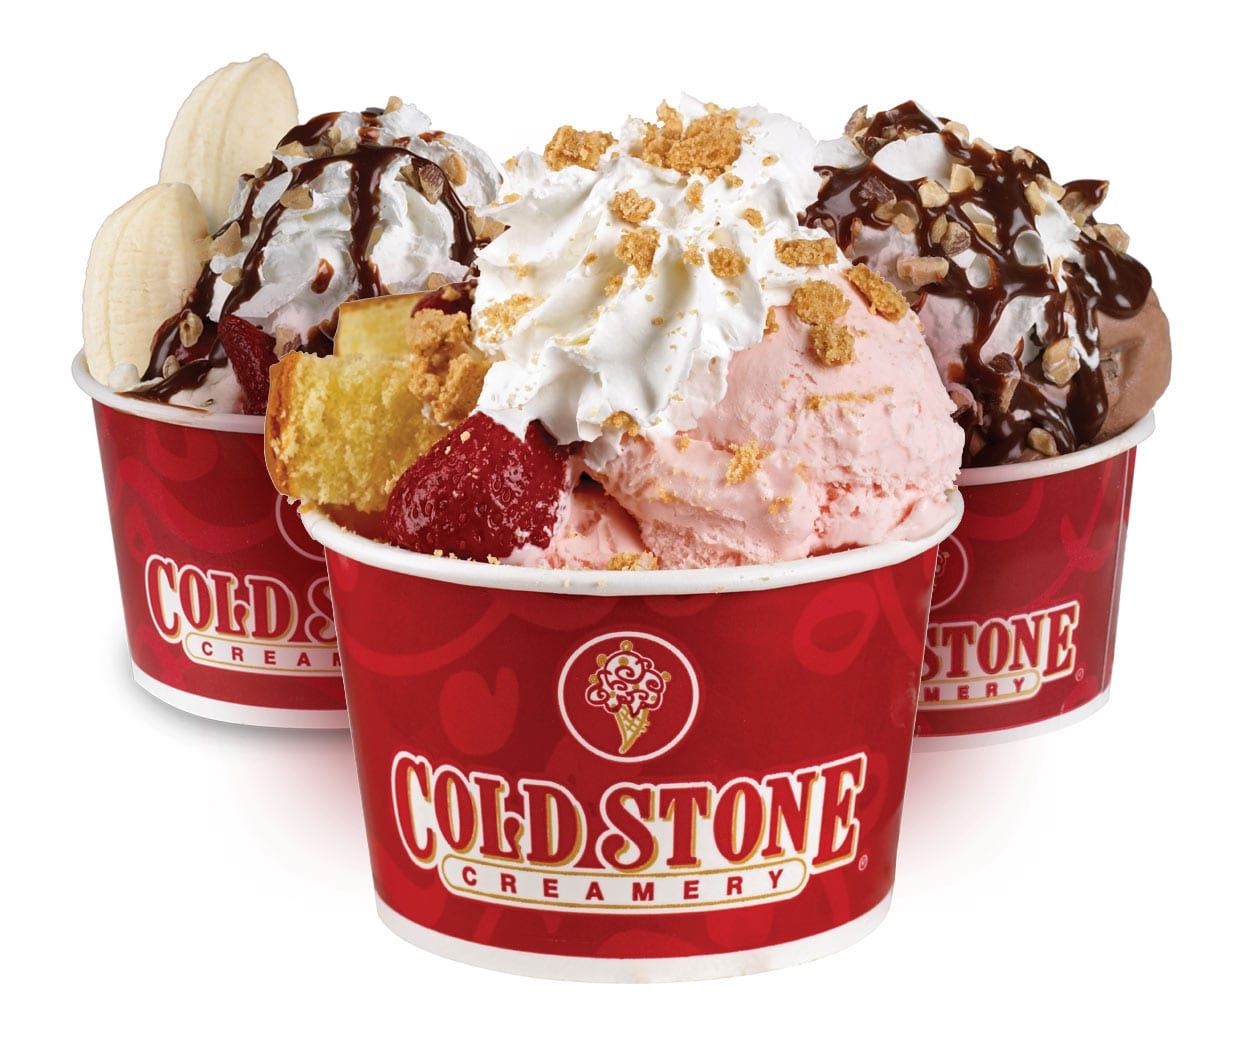 Cold Stone Creamery is one of the most popular ice cream parlors in the United States. They offer a huge variety of different styles and flavors of ice cream.